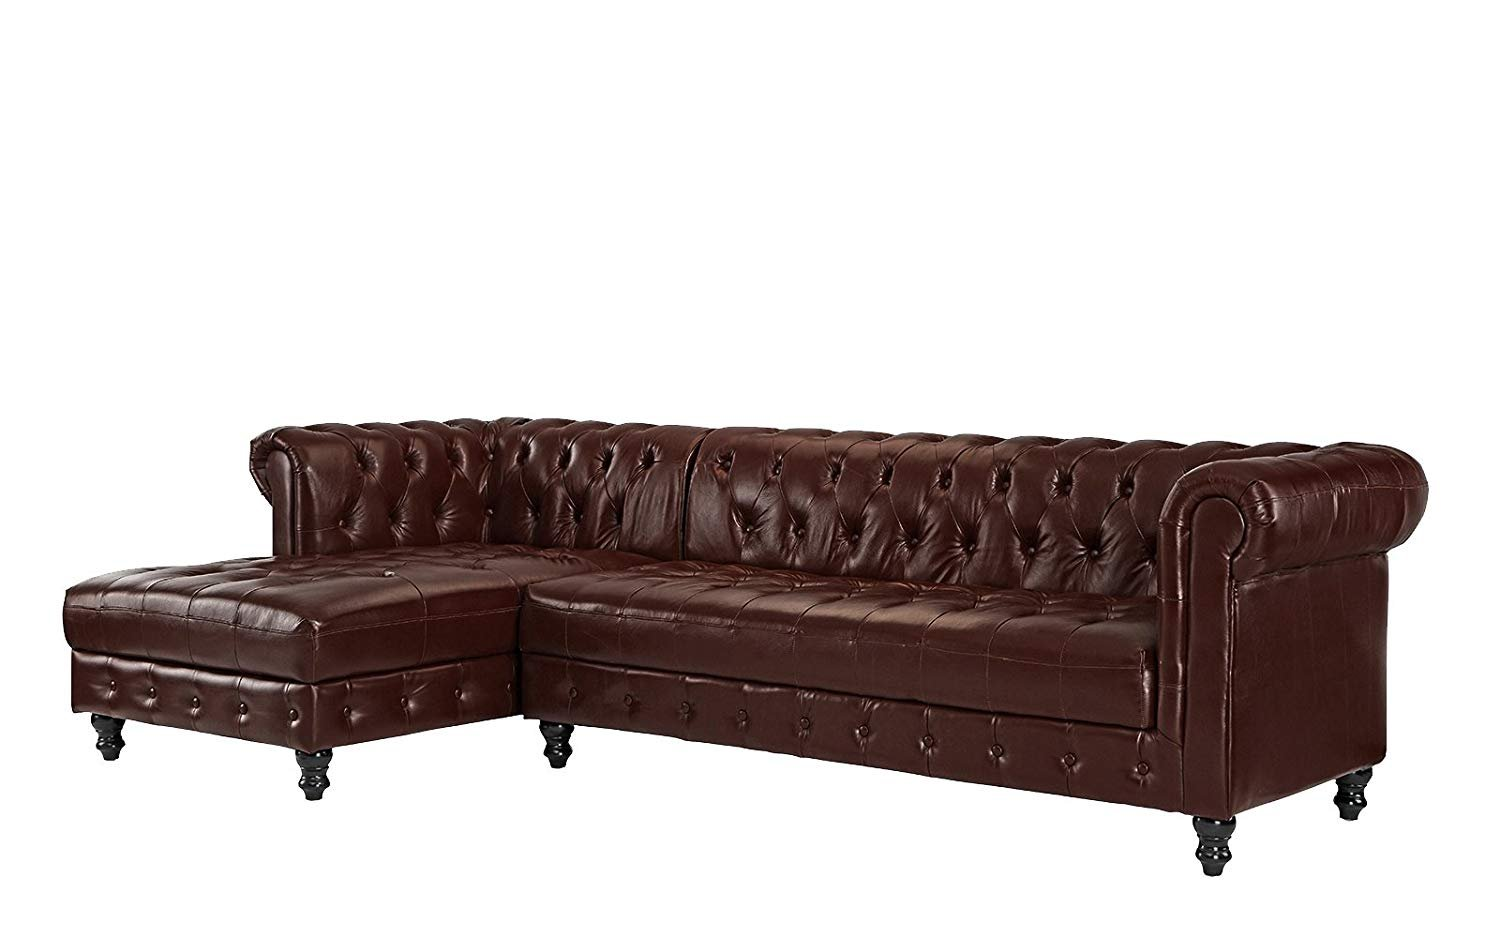 Real Tufted Leather Chesterfield L Shape Sectional Sofa ...